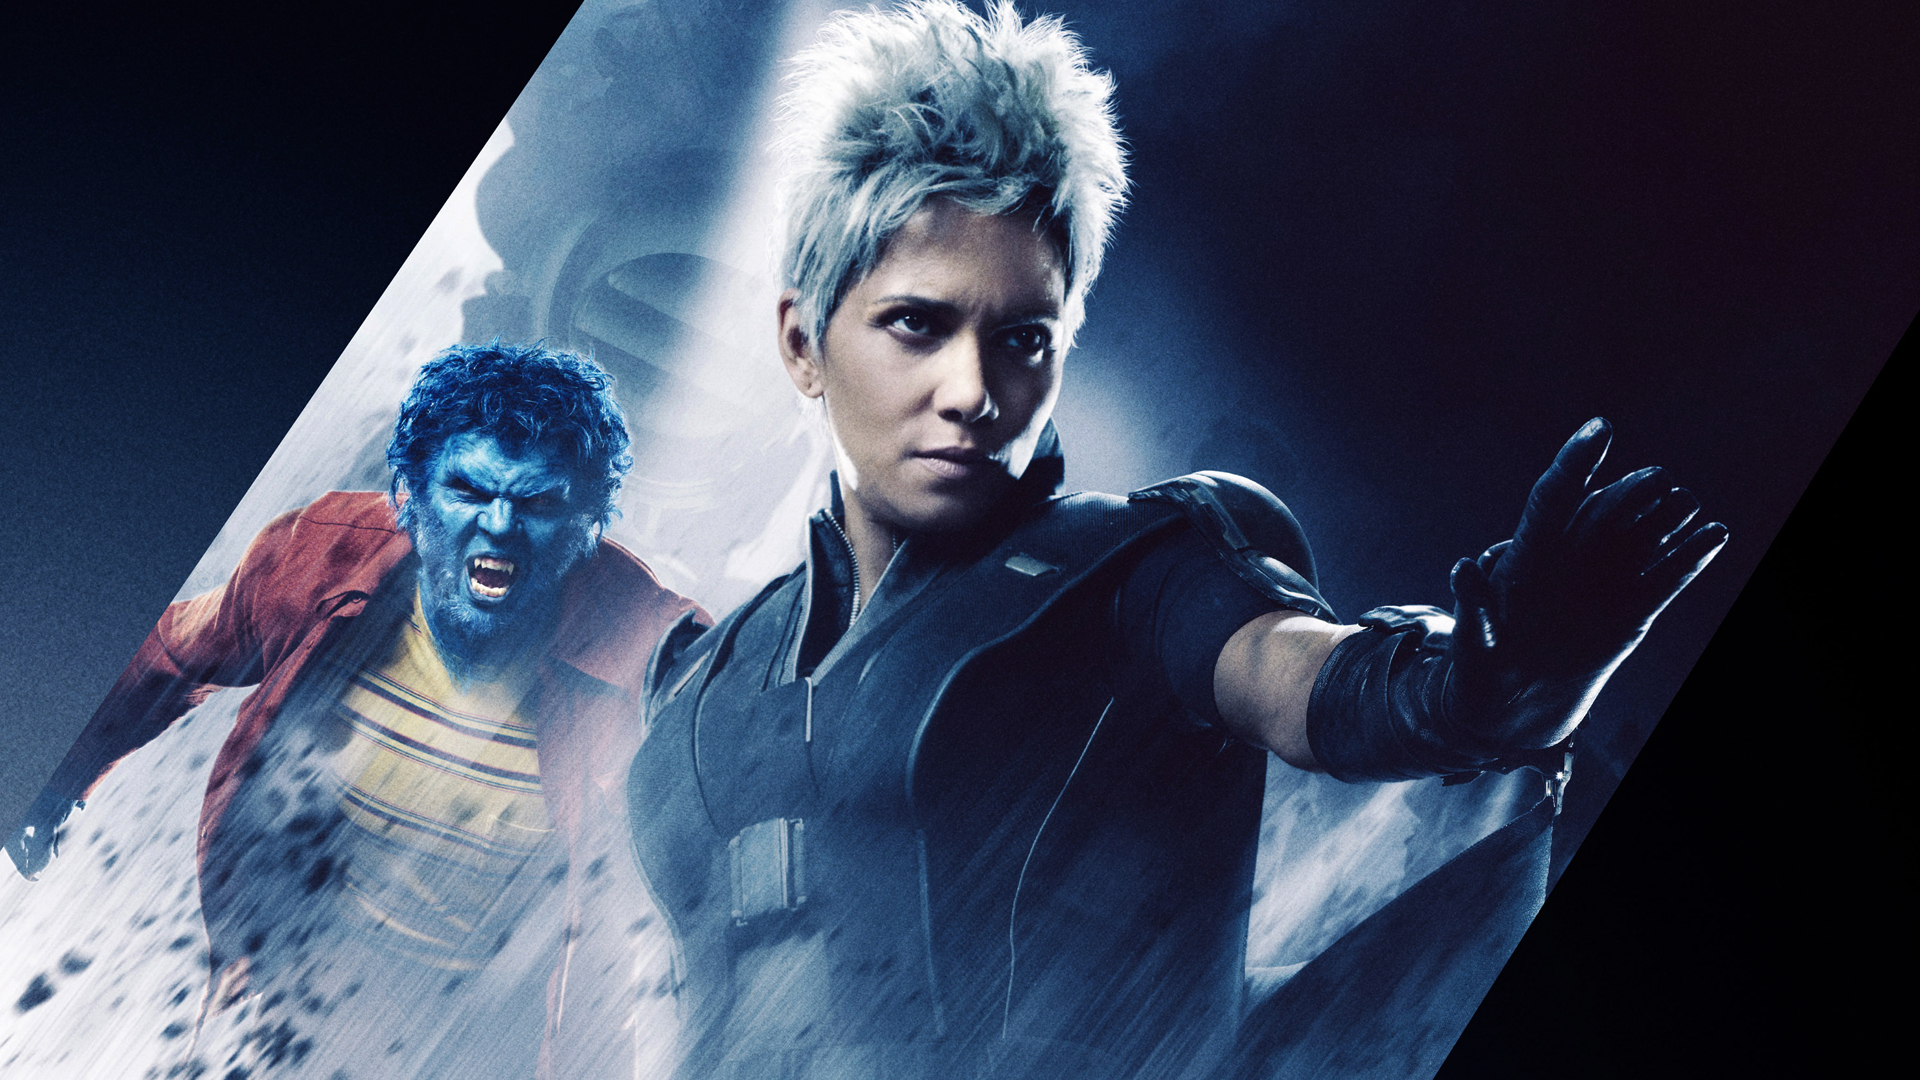 Beast and Storm X Men 2014 Wallpaper HD